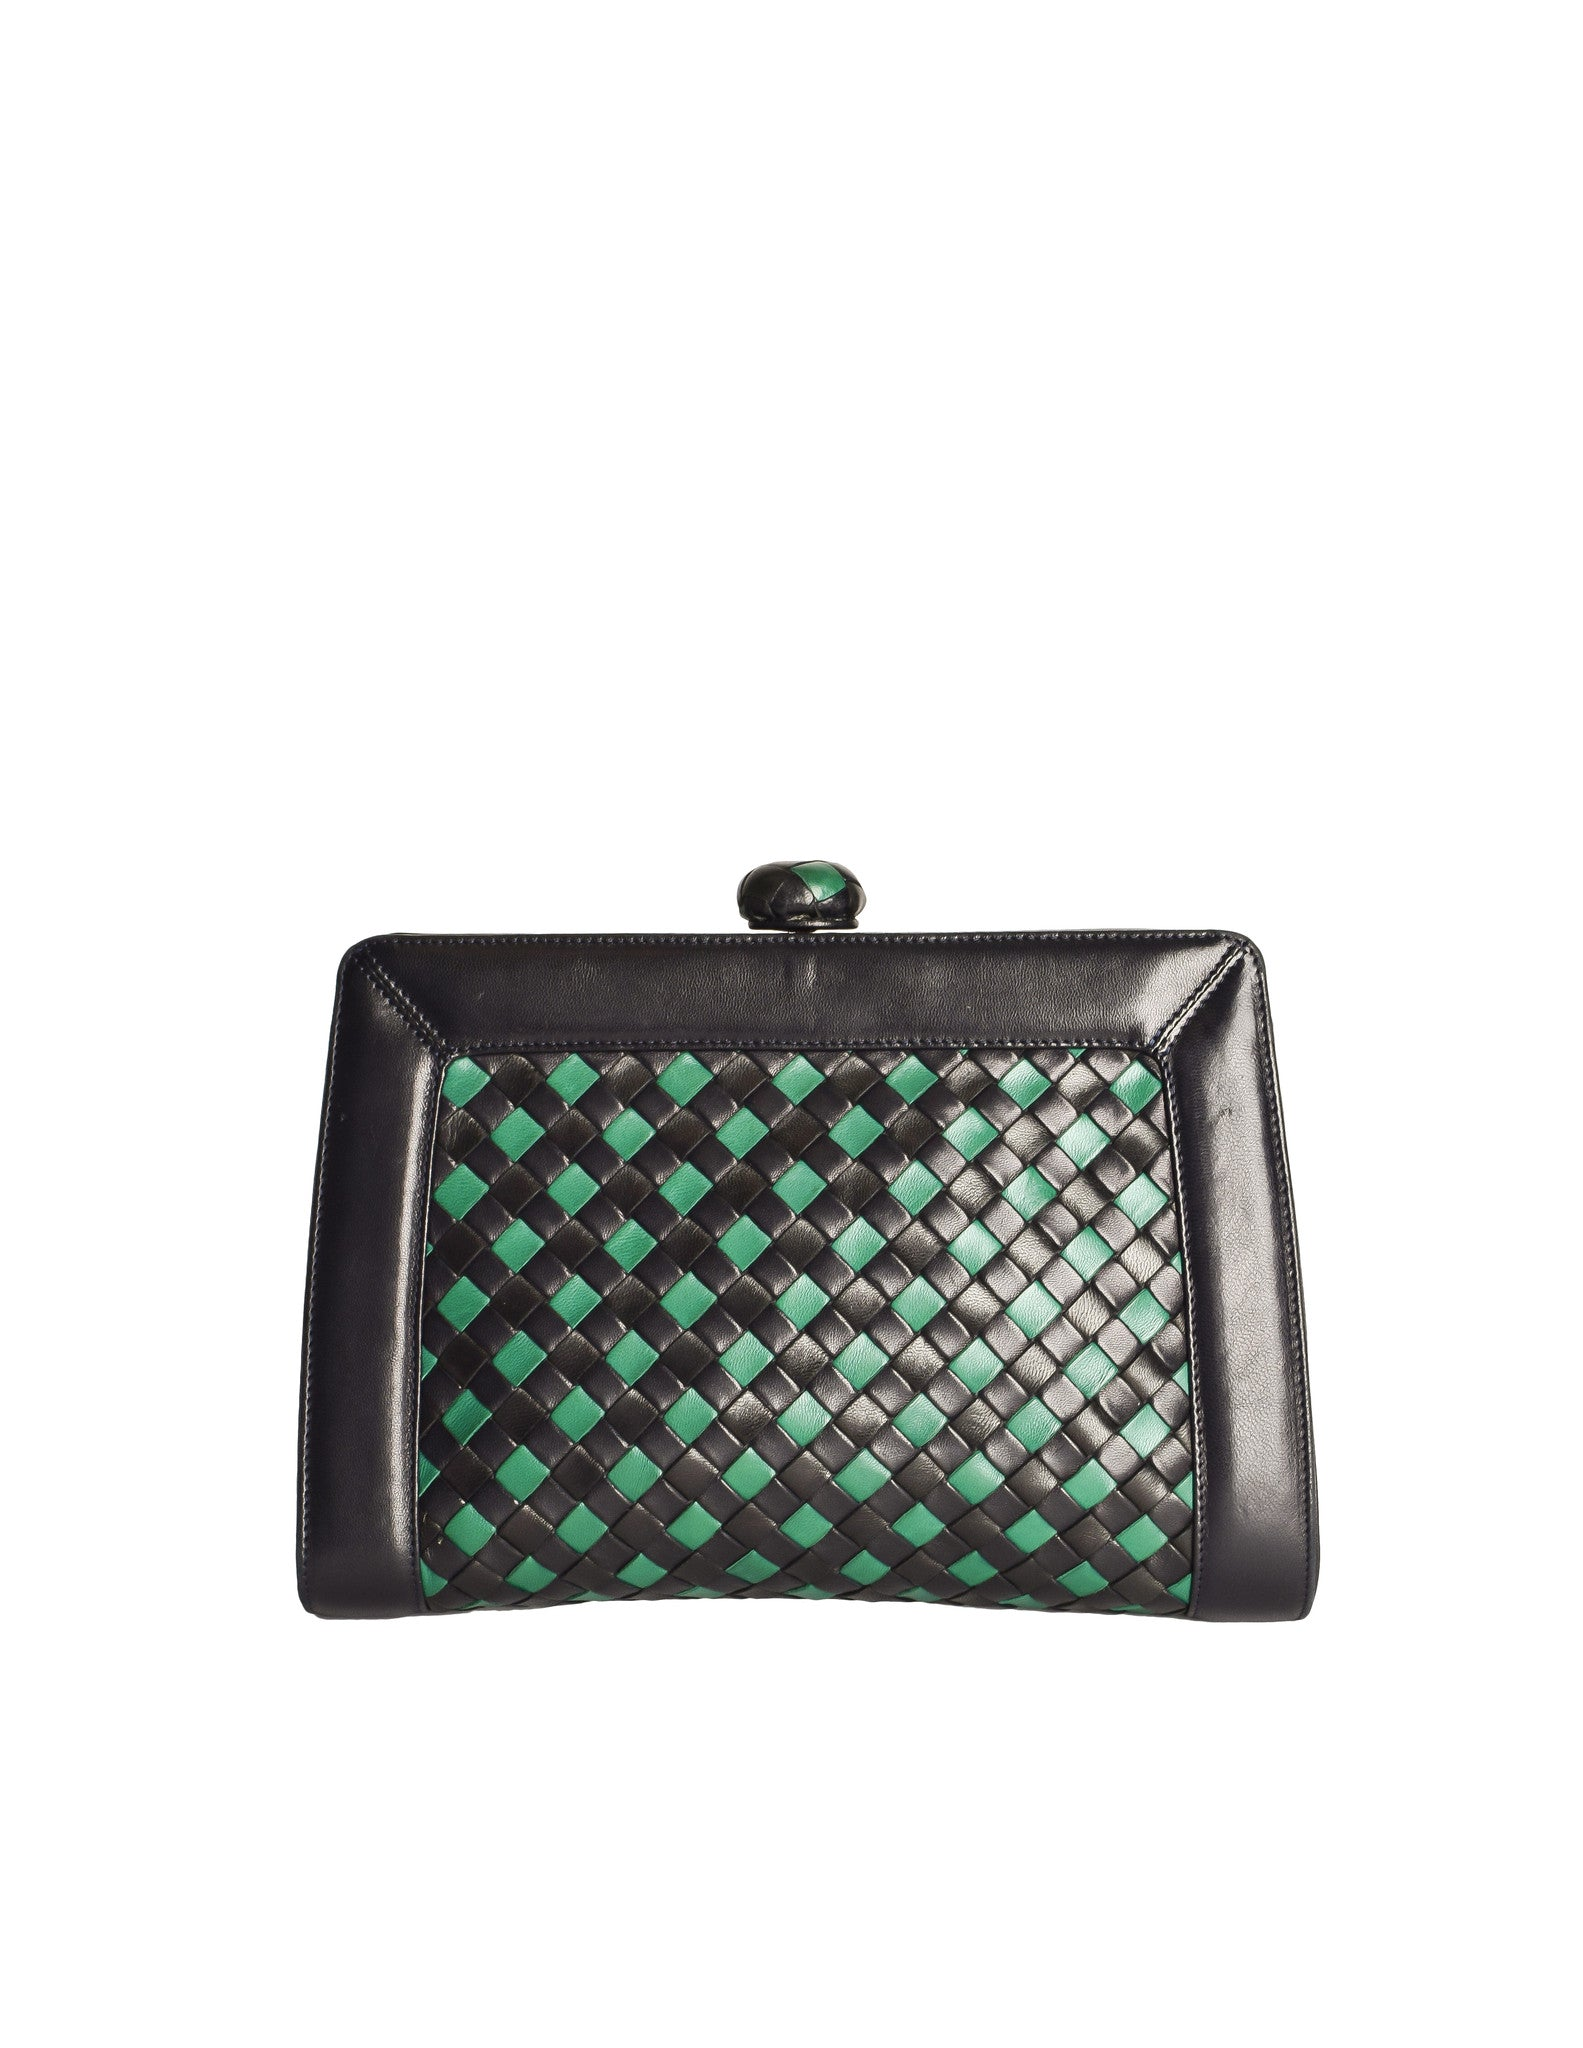 Bottega Veneta Vintage Intrecciato Blue & Green Woven Leather Clutch Bag - Amarcord Vintage Fashion  - 1